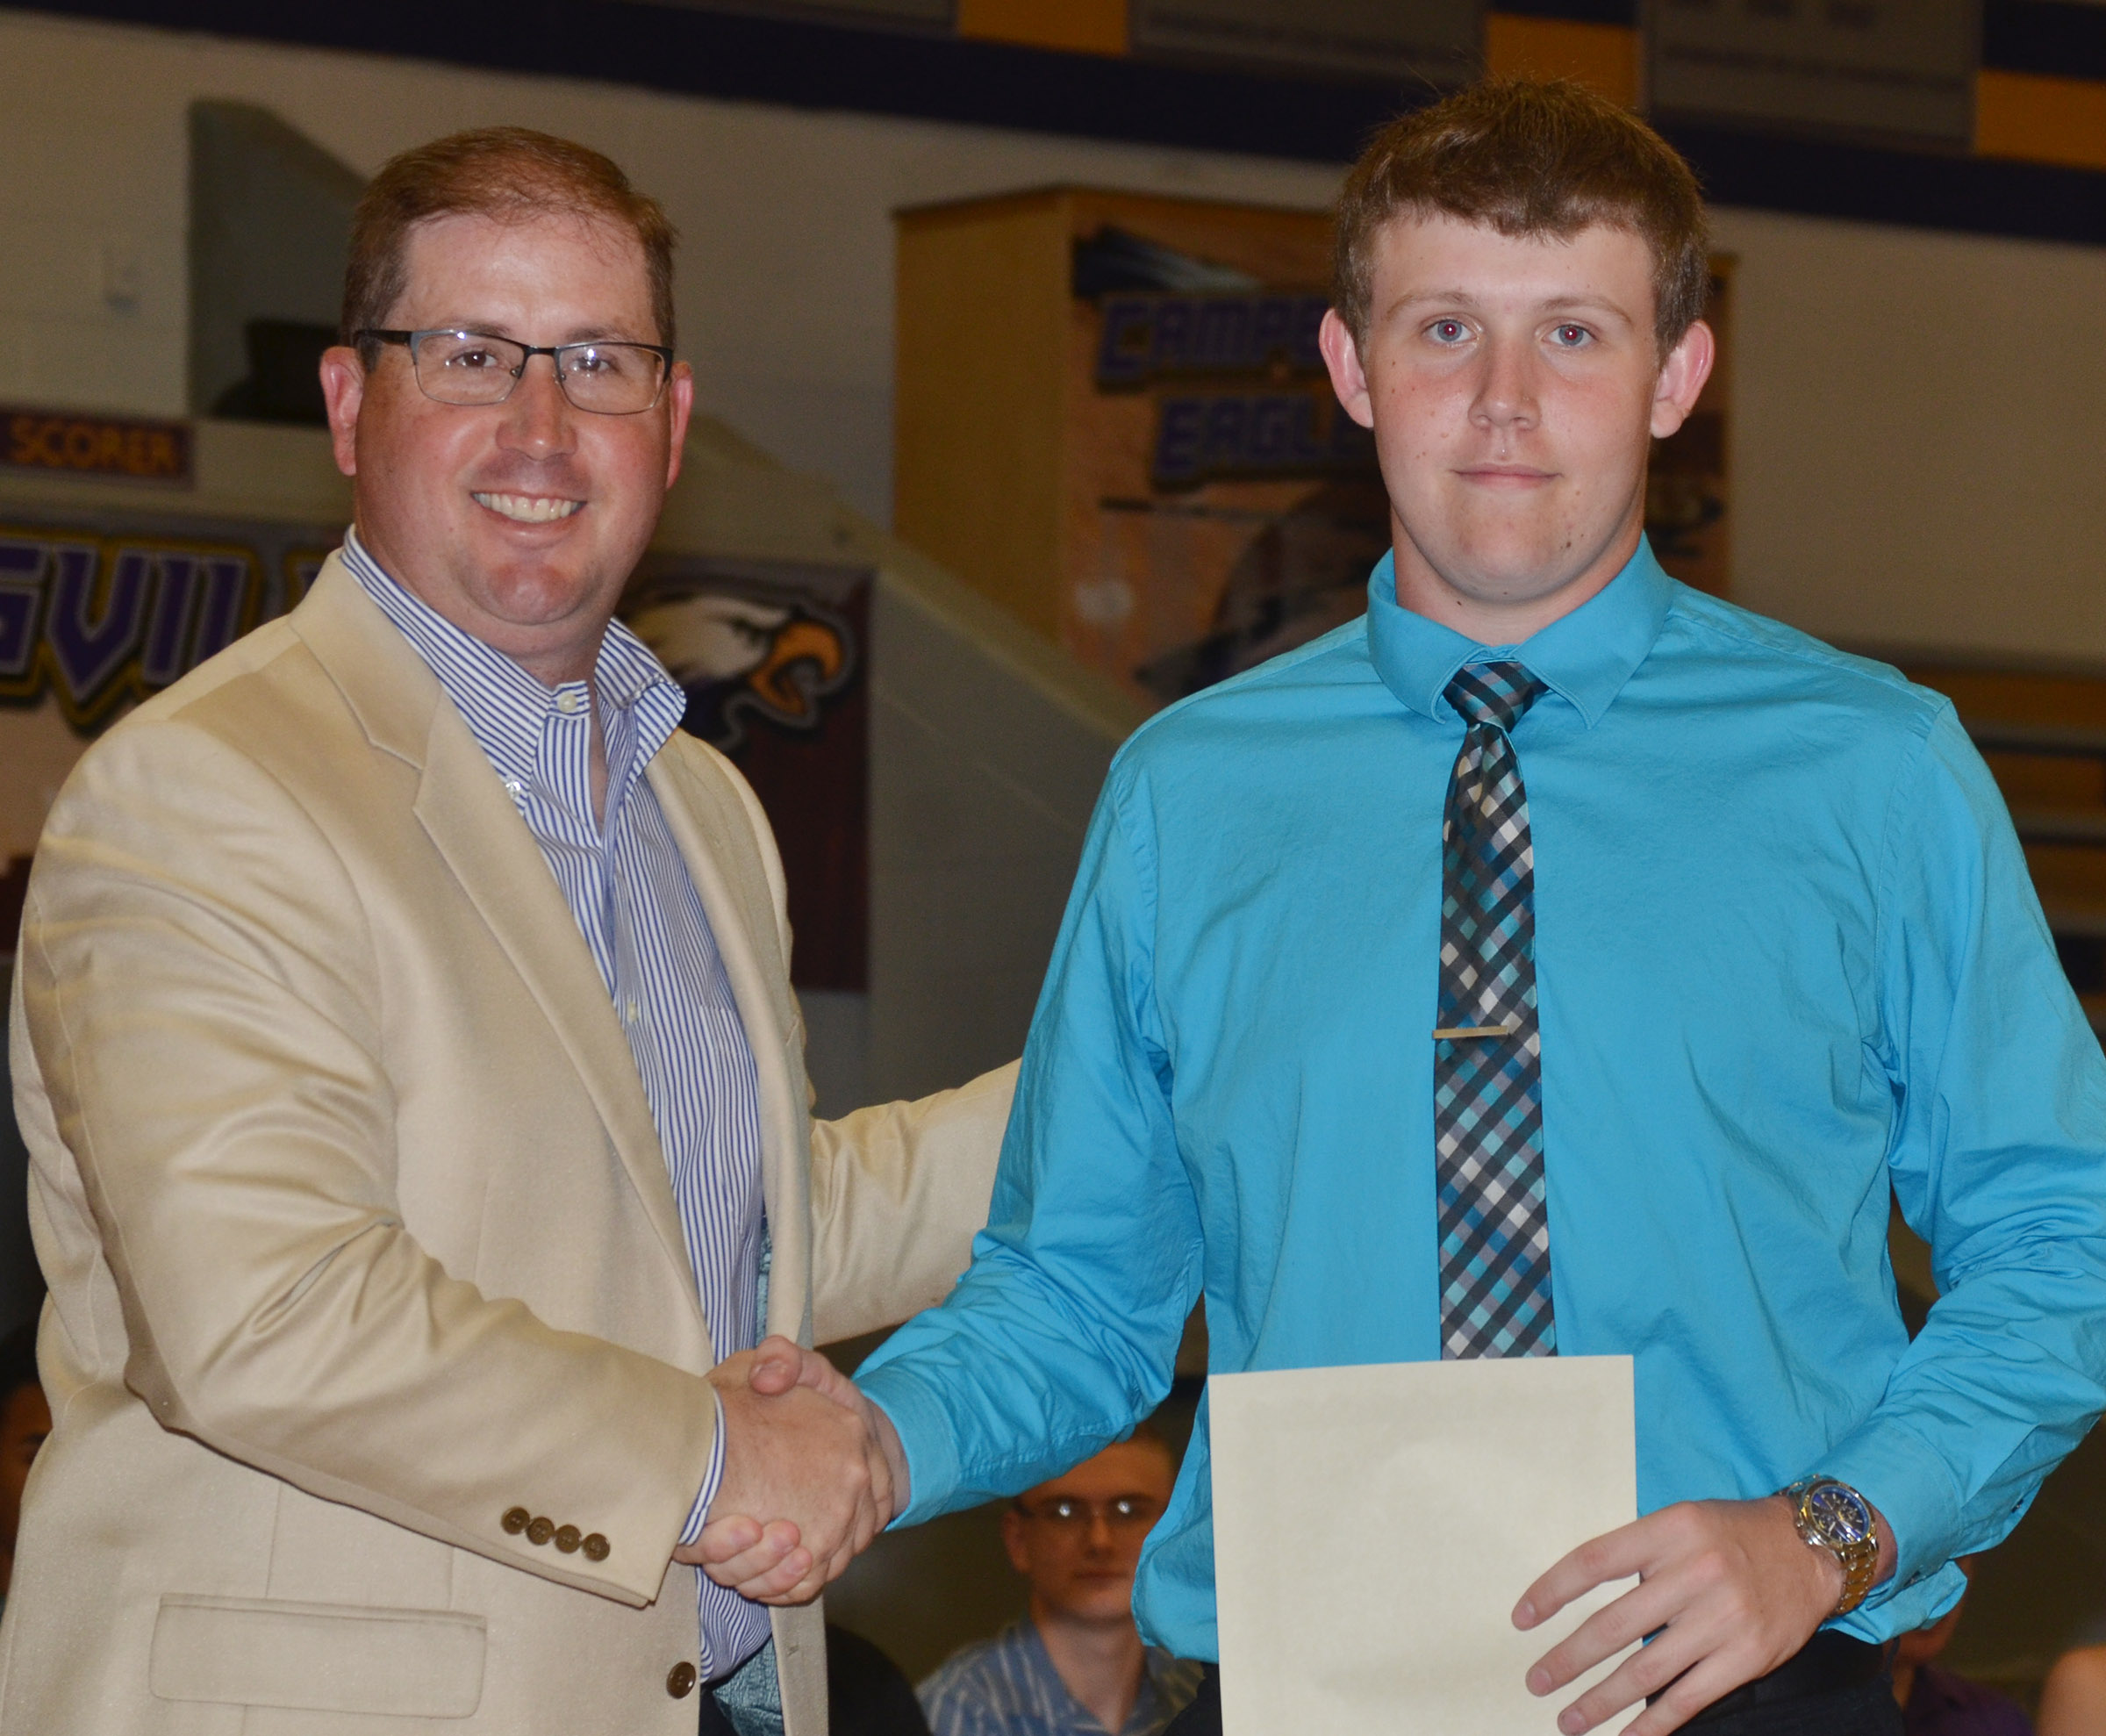 Jared Brewster receives the Taylor County Farm Bureau Federation scholarship from agent Darin Price.